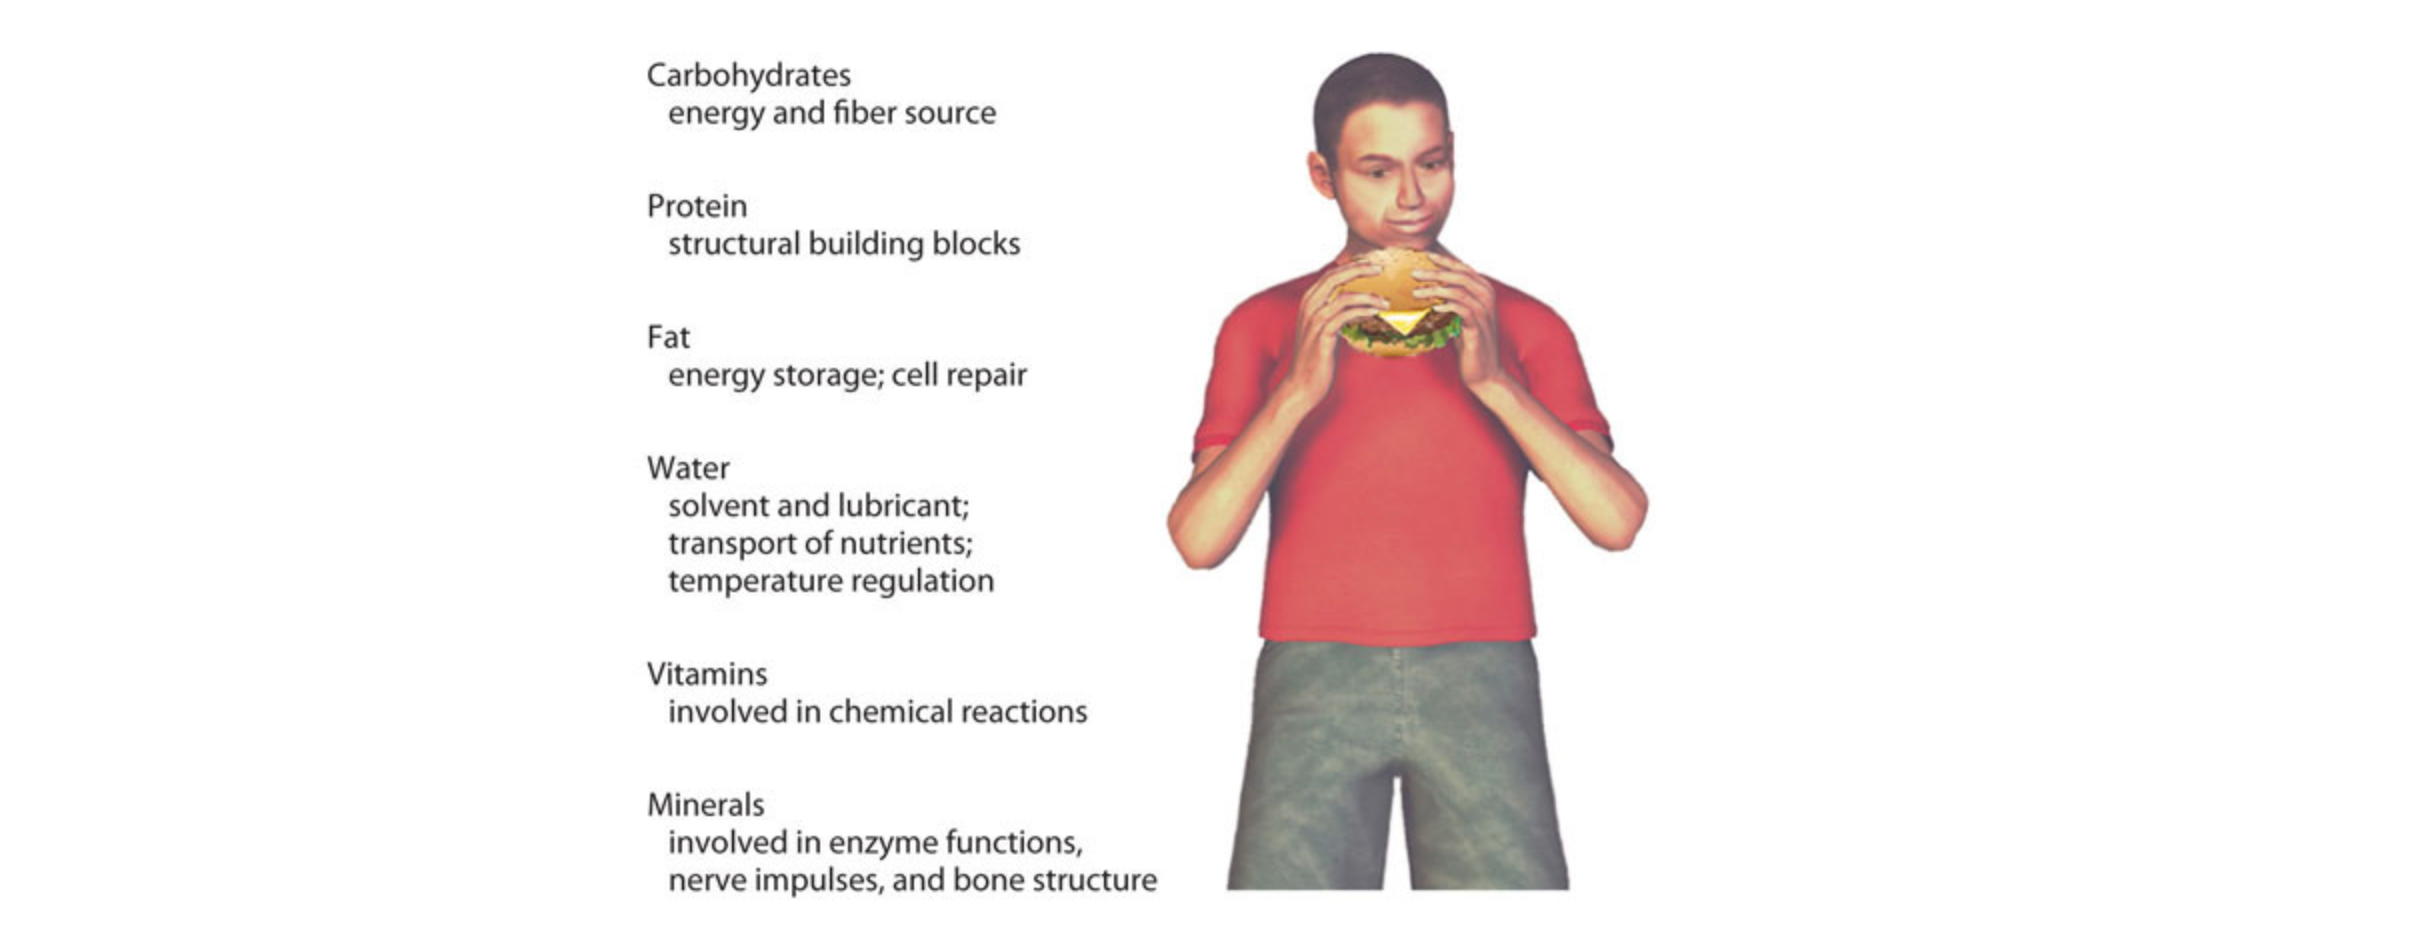 an Image listing the six classes of nutrients with a boy holding a hamburger to the right of the list. the six nutrient classes shown are: Carbohydrates(energy and fiber source), Protein(structural building blocks), Fat(energy storage; cell repair), Water(solvent and lubricant;transport of nutrients;temperature regulation), Vitamins(involved in chemical reactions),Minerals(involved in enzyme functions, nerve impulses, and bone structure)